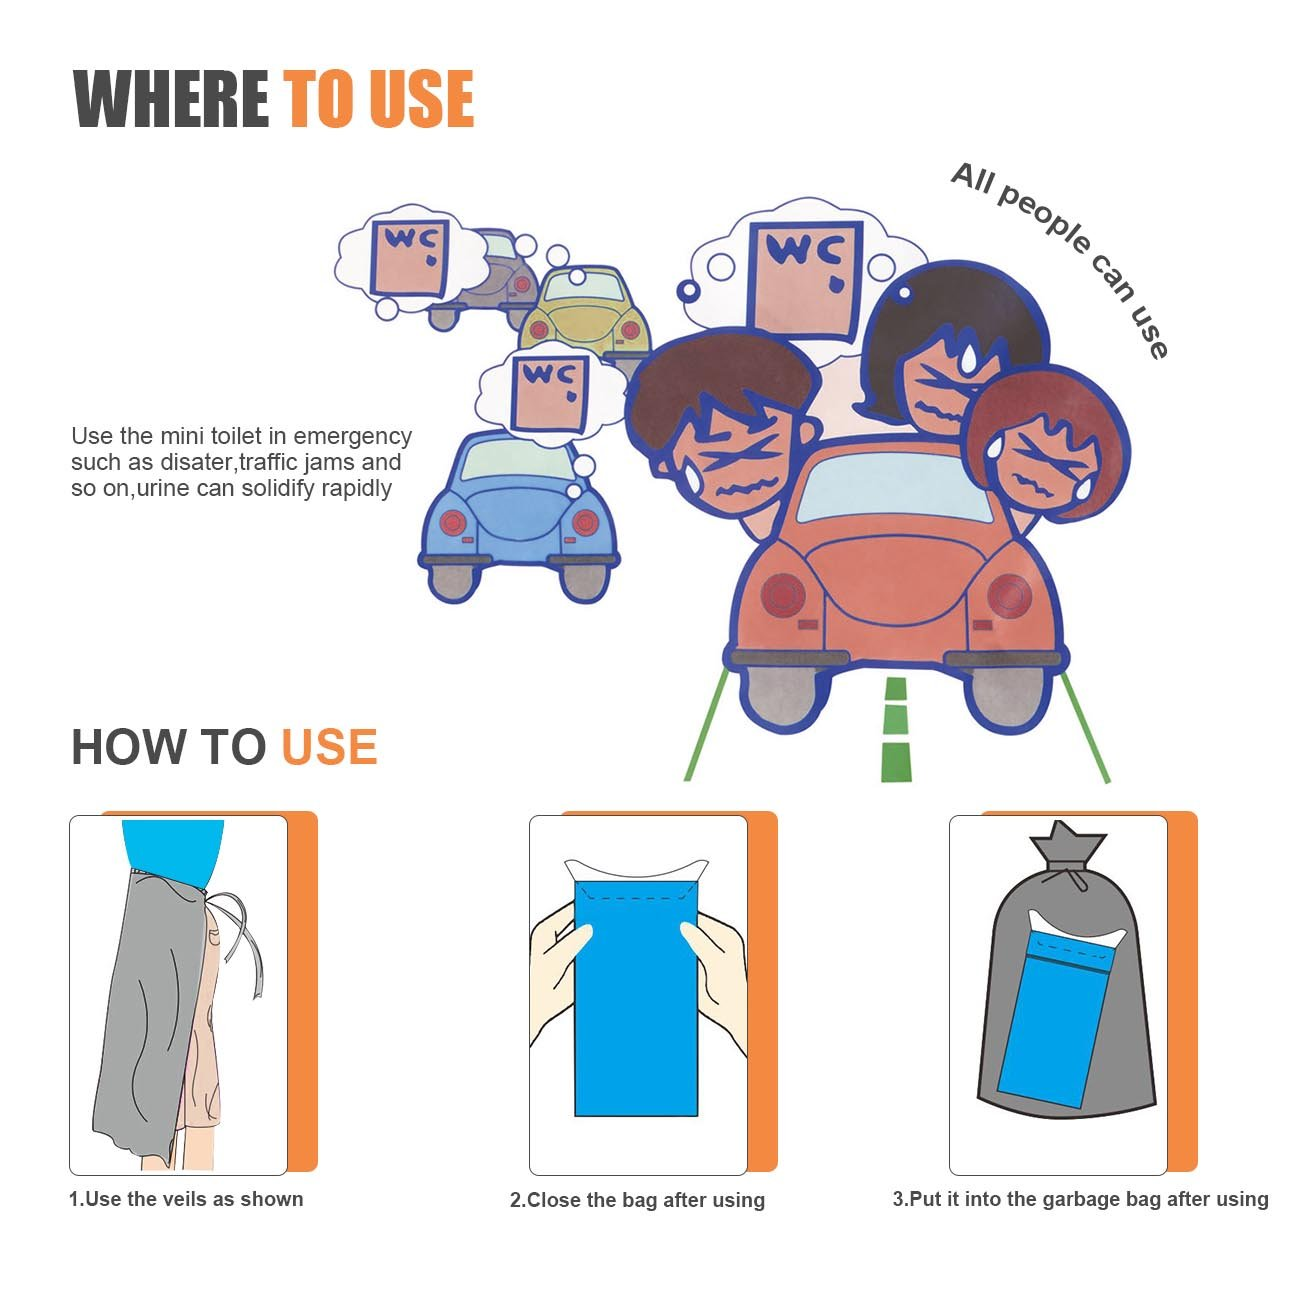 KOONEW Disposable Urine Bags Portable Outdoor Emergency Pee Bags for Kids Men Women,Super Absorbent Urinal Bag for Traveling and Emergency 12 Pcs by KOONEW (Image #6)